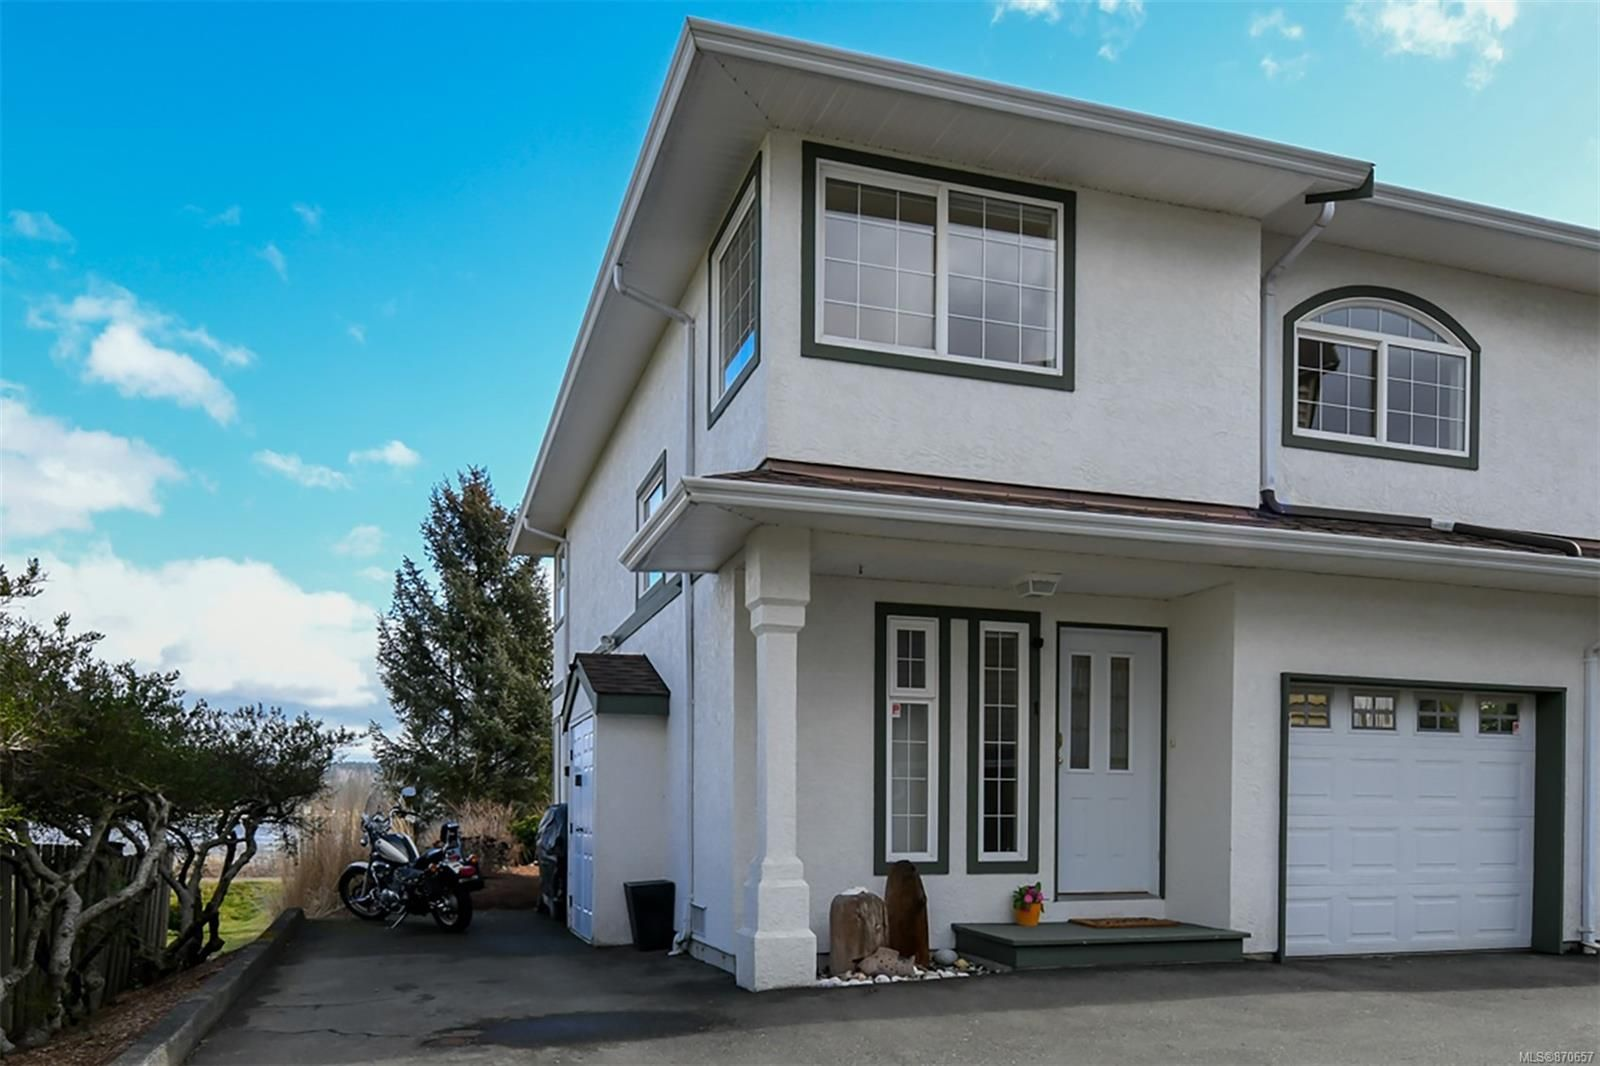 Main Photo: 1 3020 Cliffe Ave in : CV Courtenay City Row/Townhouse for sale (Comox Valley)  : MLS®# 870657